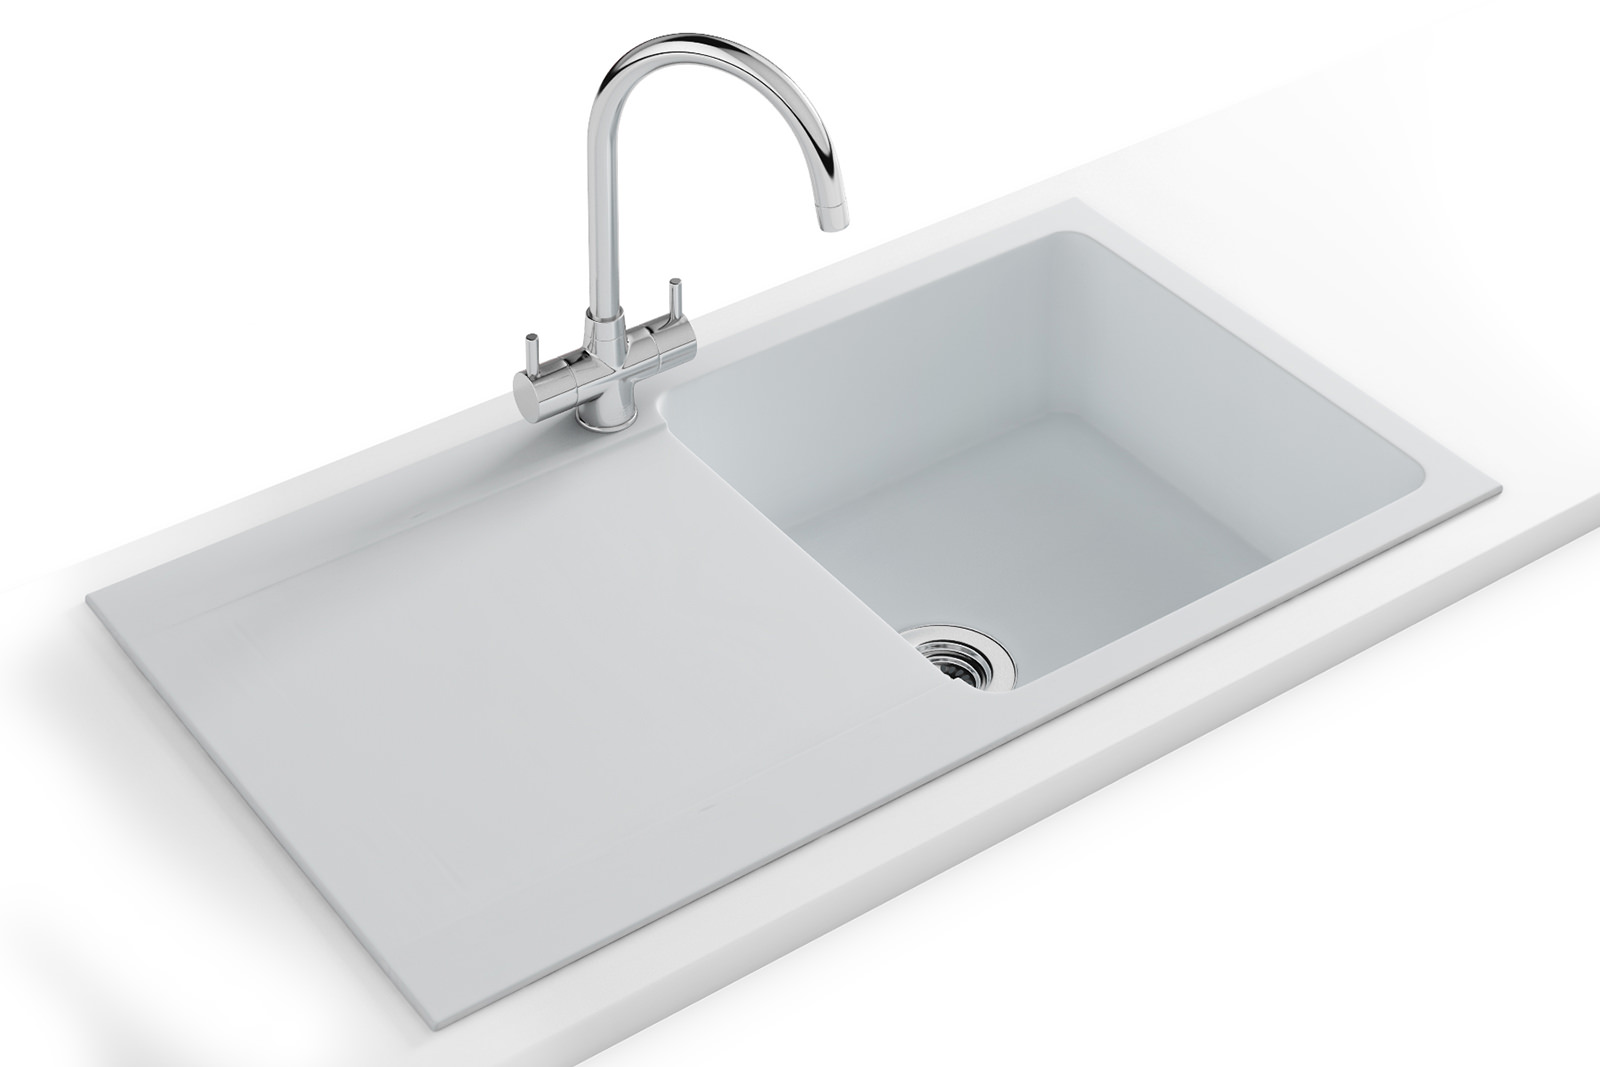 Franke White Composite Sink : Franke Orion Propack OID 611-94 Tectonite Polar White Kitchen Sink And ...